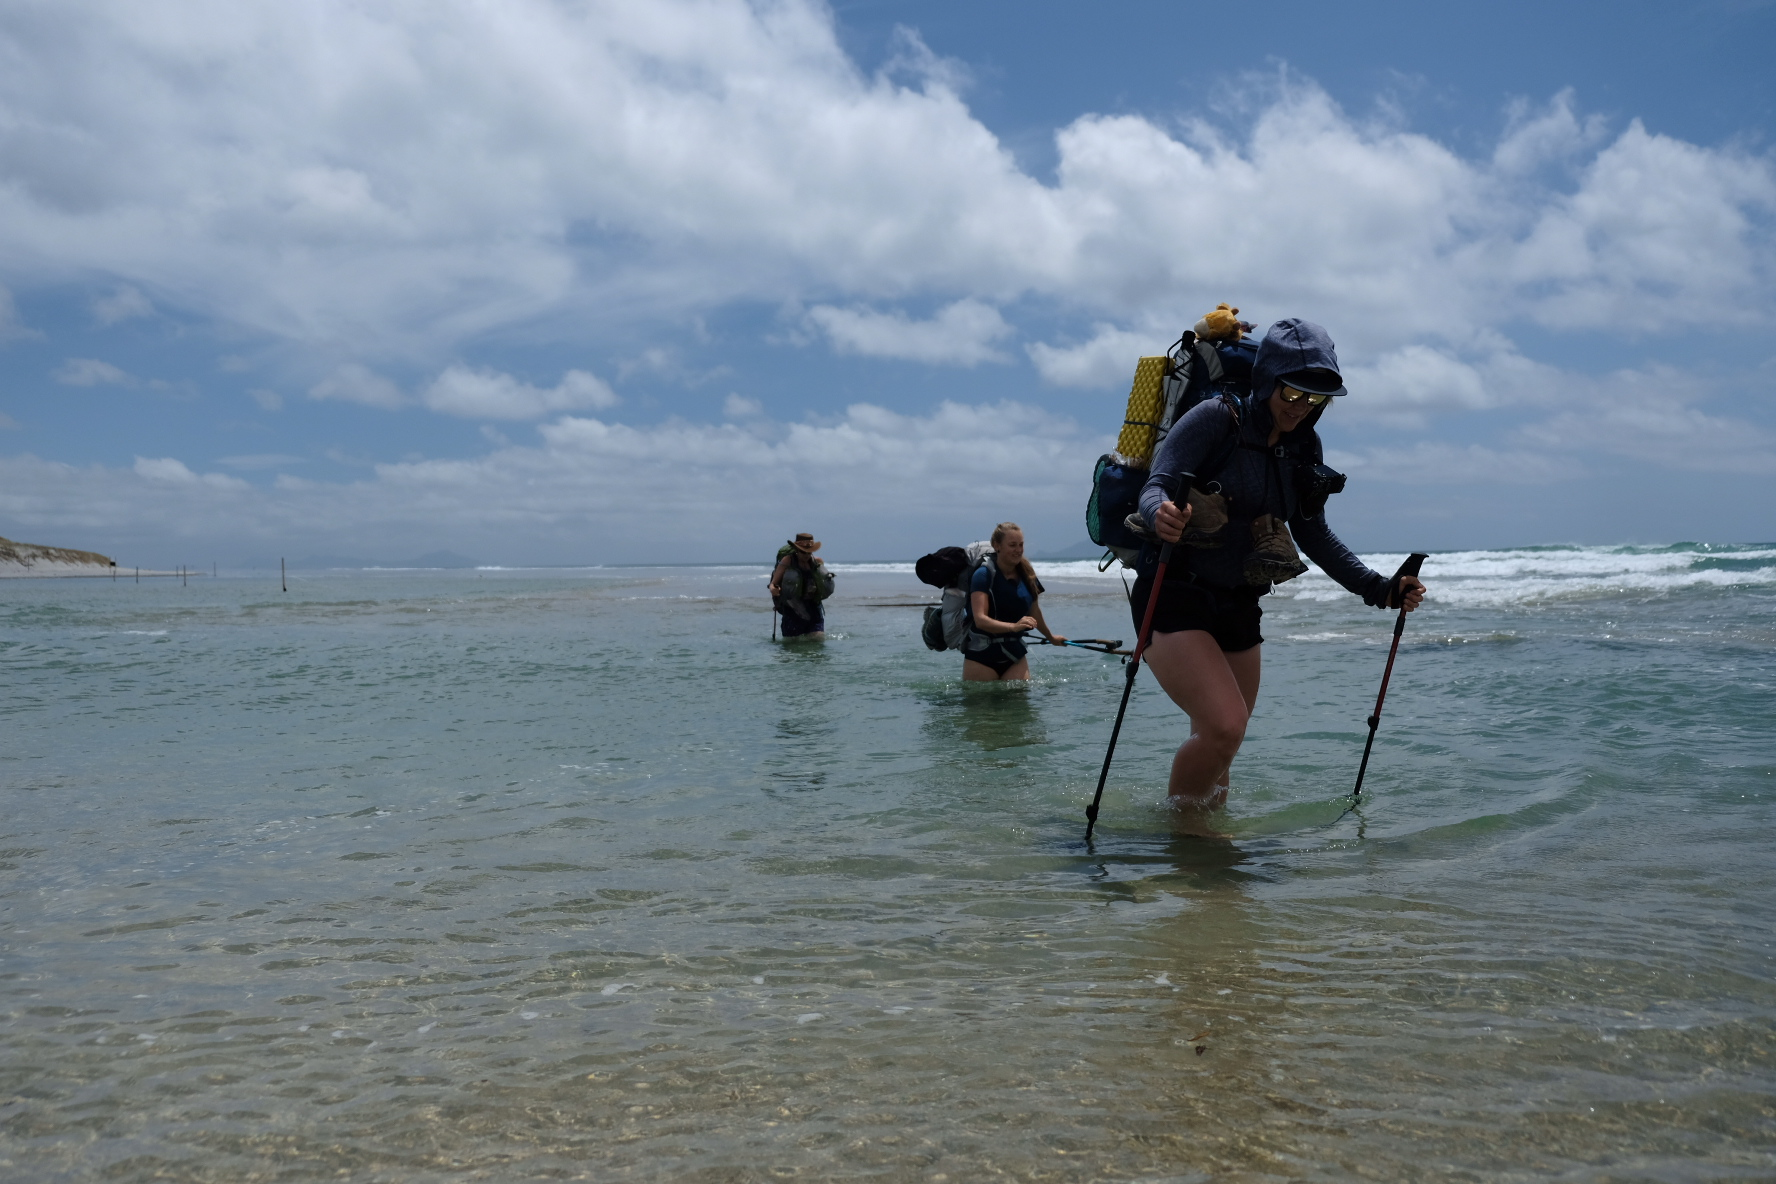 Estuary crossing: Sarah in front, Iben immediately behind, and Marte in the back